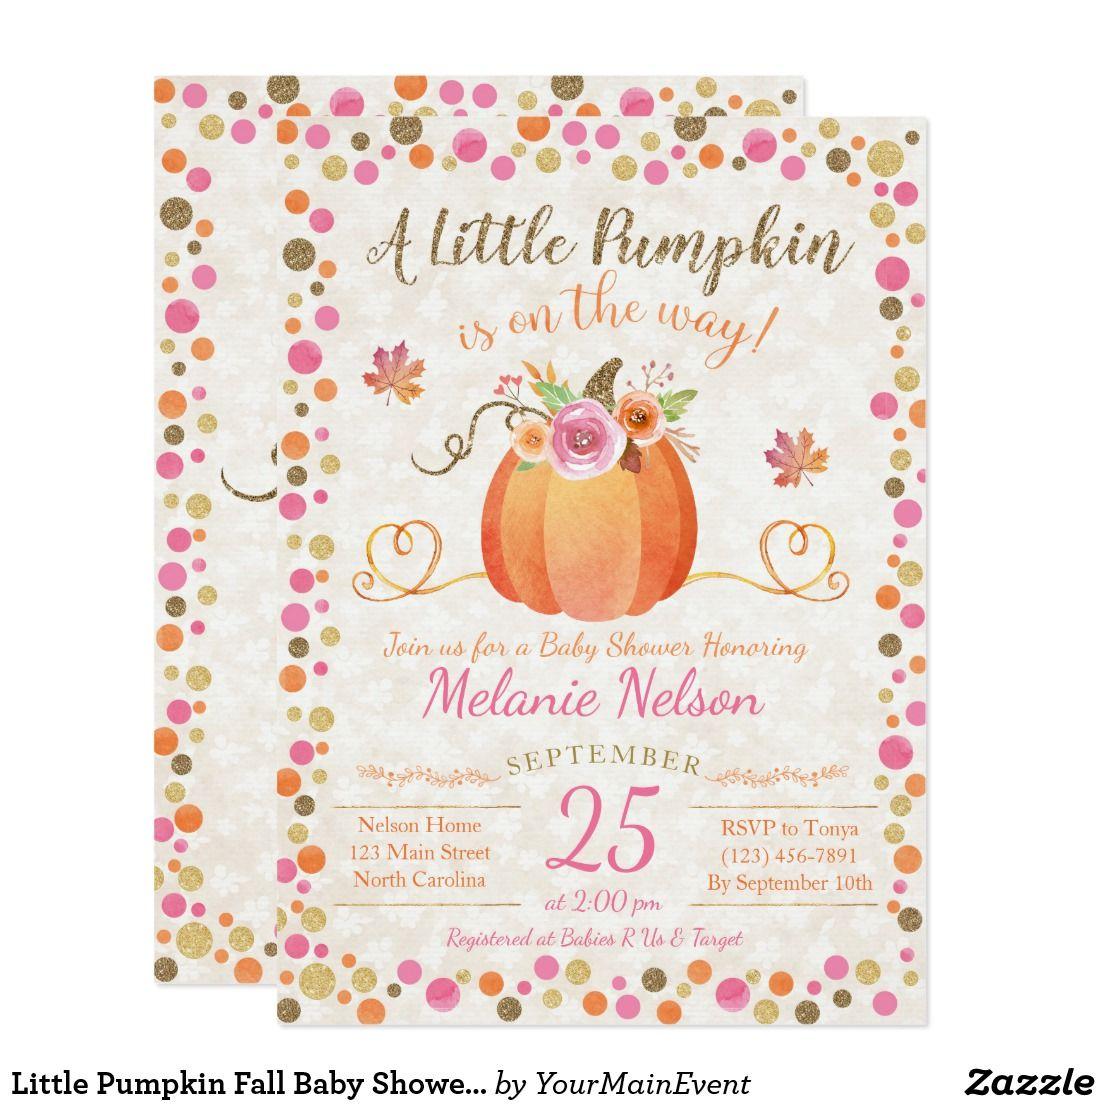 Little Pumpkin Fall Baby Shower Invitation This pink, orange and ...